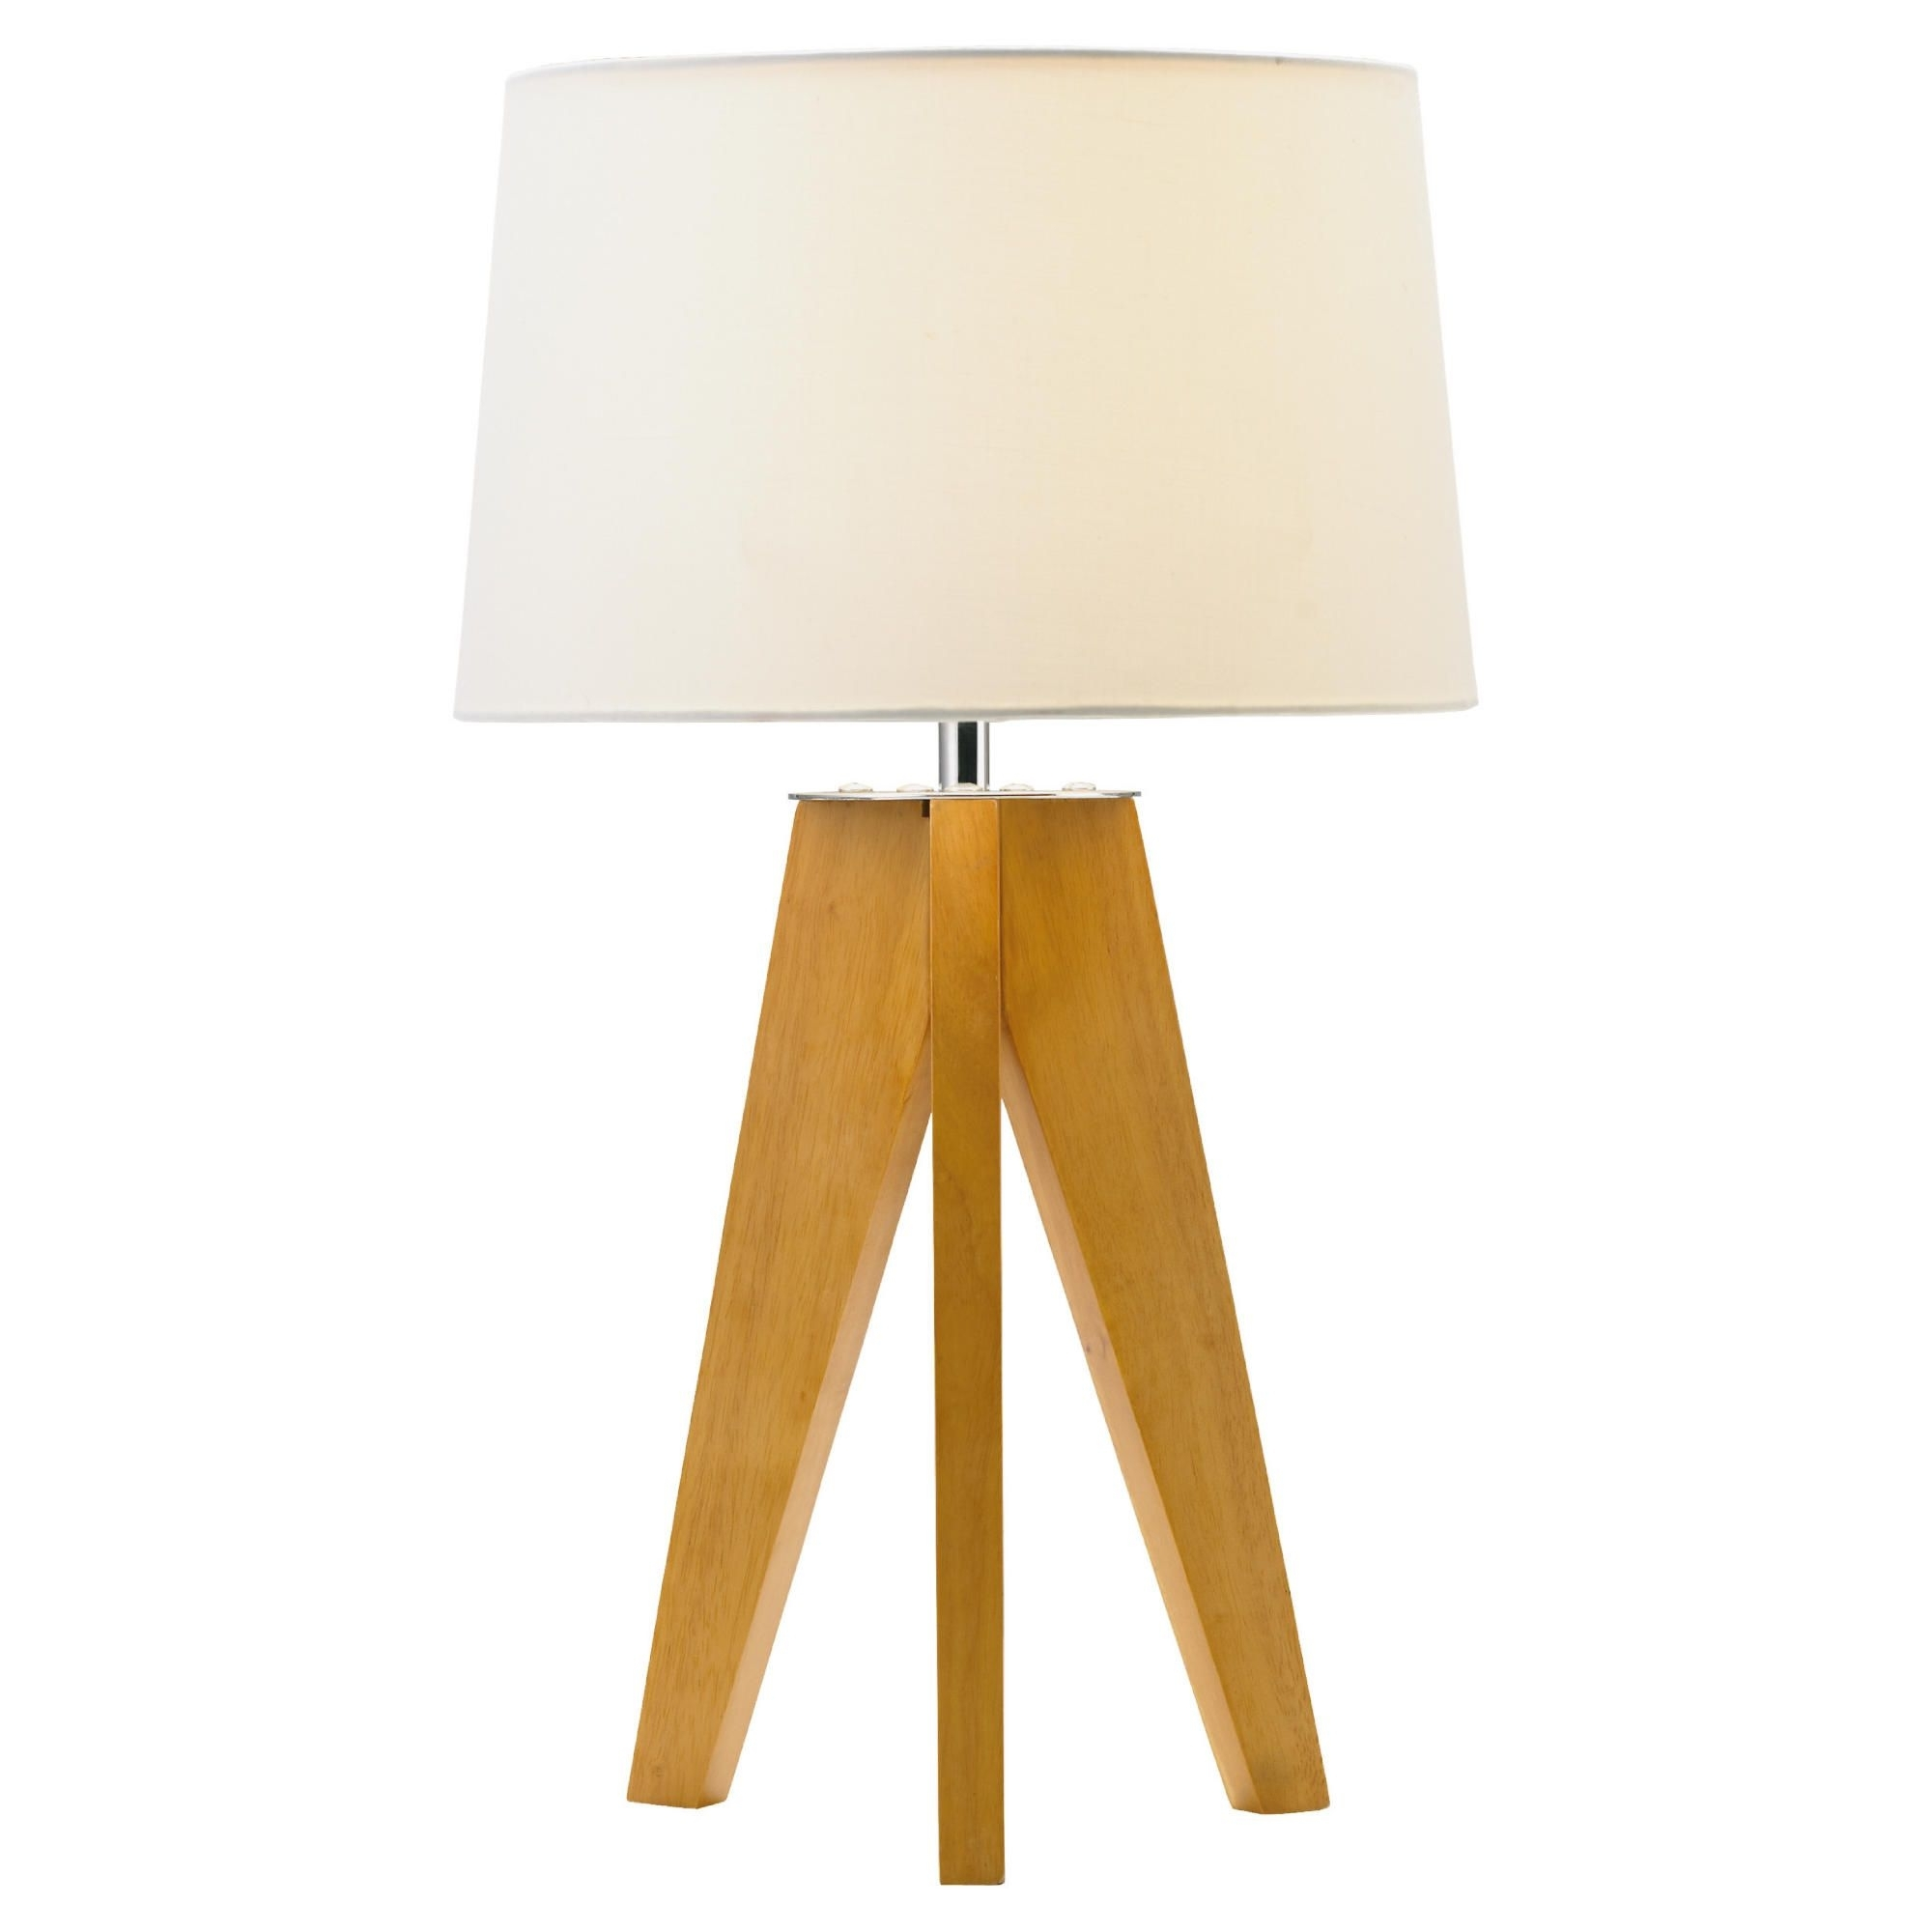 Well Liked Wooden Grey Tripod Table Lamp Base Inside Debenhams Table Lamps For Living Room (View 20 of 20)